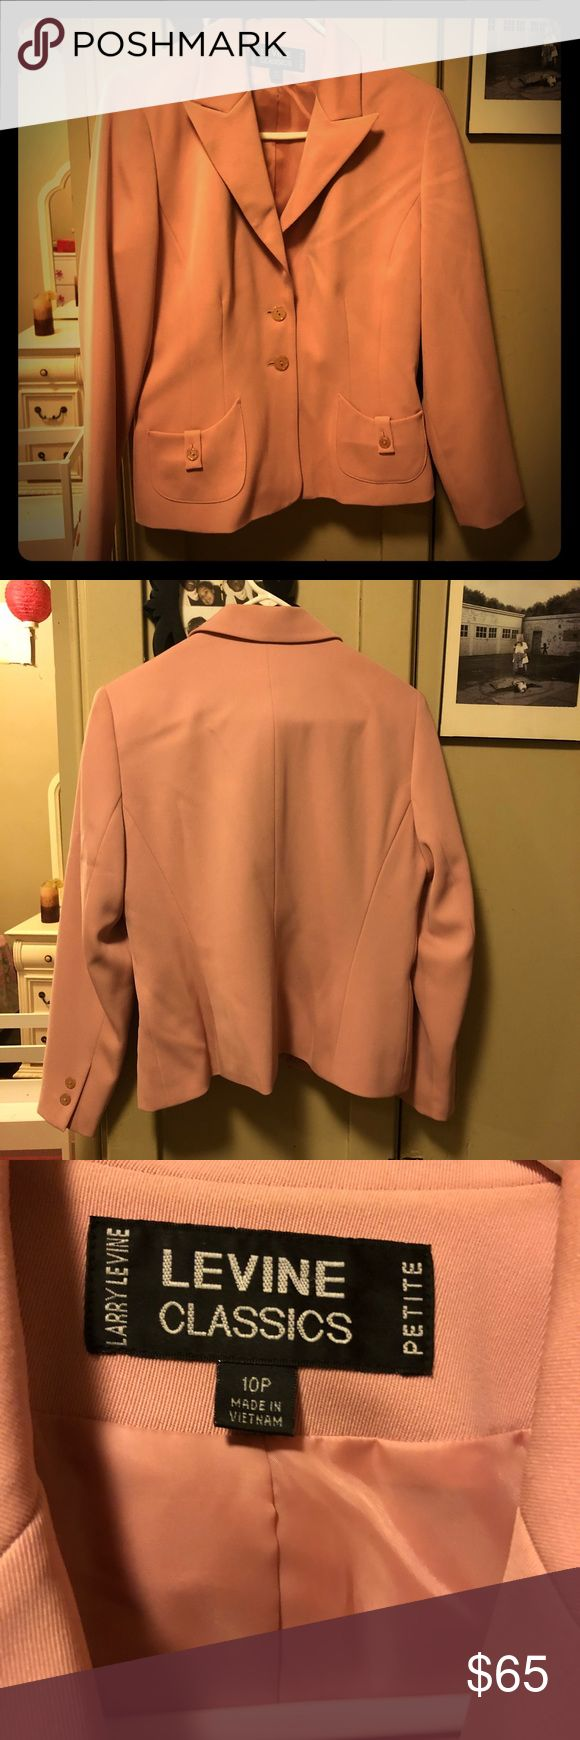 Larry Levine Classics Flirty, Preppy Pink Blazer This vintage piece is so cute, it's like Prep school meets Mad Men fun and flirty! Super cute pockets, that are functional, and pretty shiny, unique buttons. The darts show off your figure. It is a size 10 Petite, I wanted to let you know. I listed the matching skirt separate you can buy what you like! Larry Levine Classics Jackets & Coats Blazers